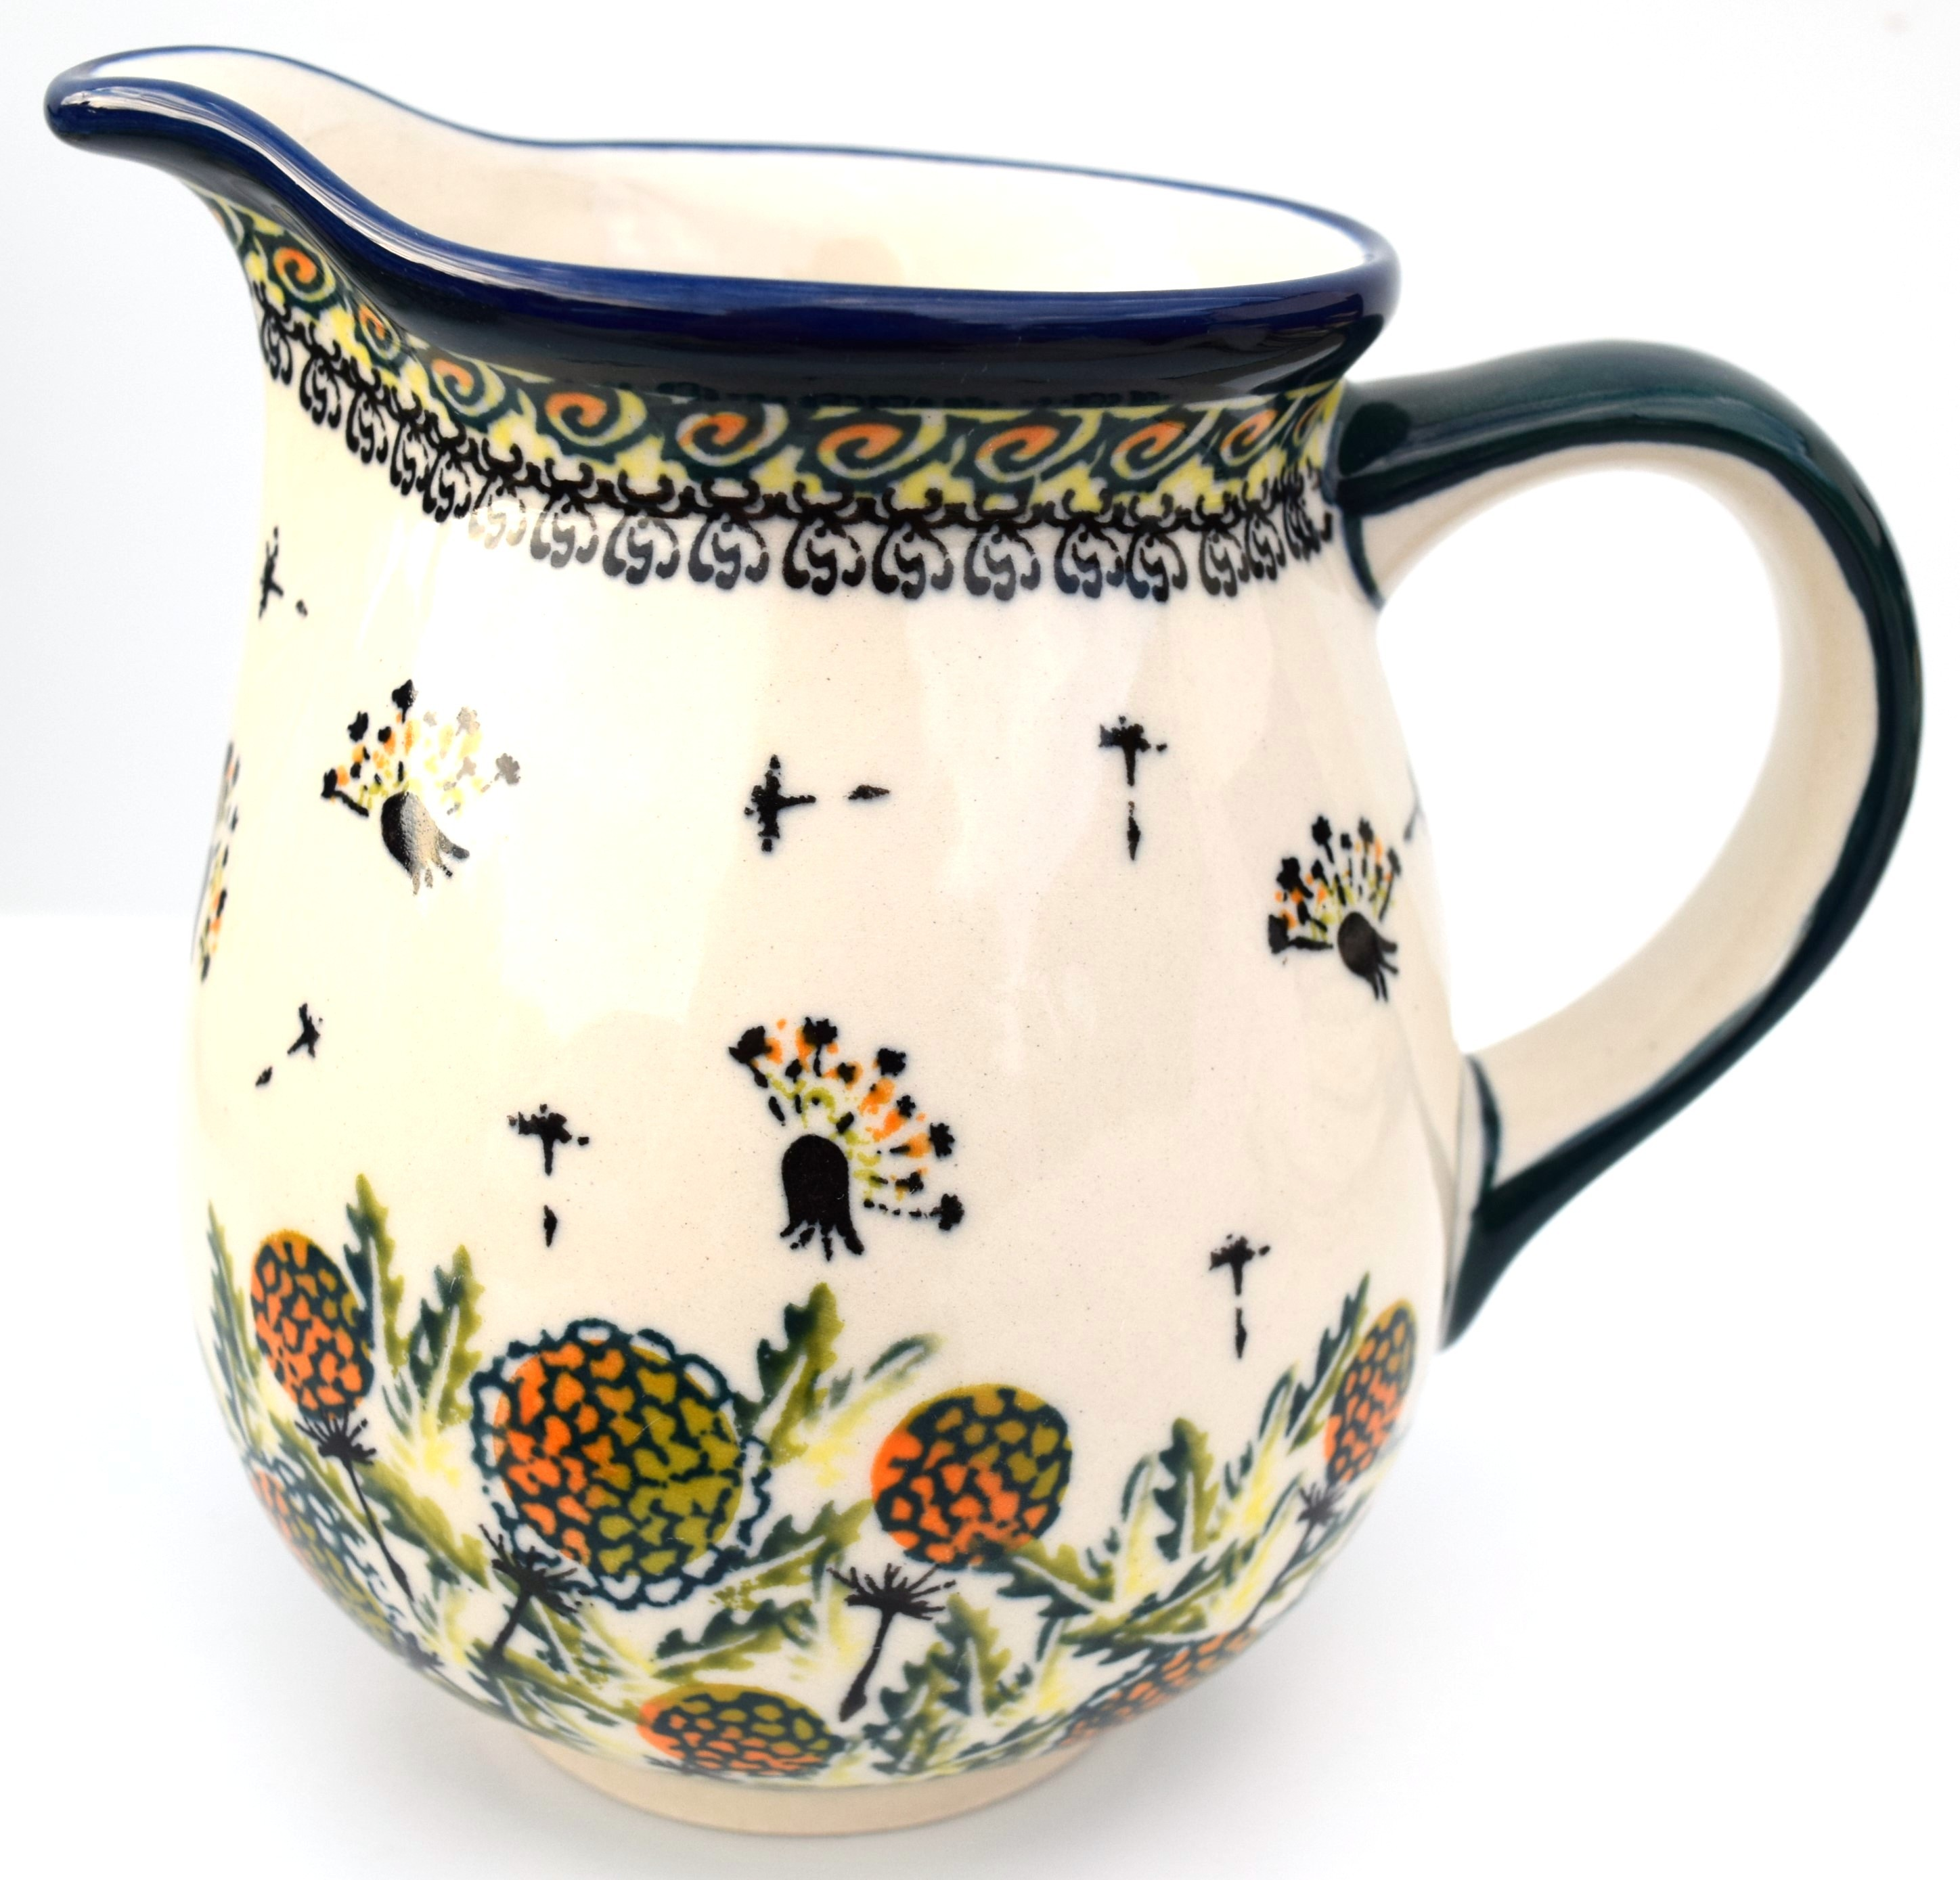 Pottery Avenue 28oz Medium Stoneware Pitcher - 951-DU183 Wishful